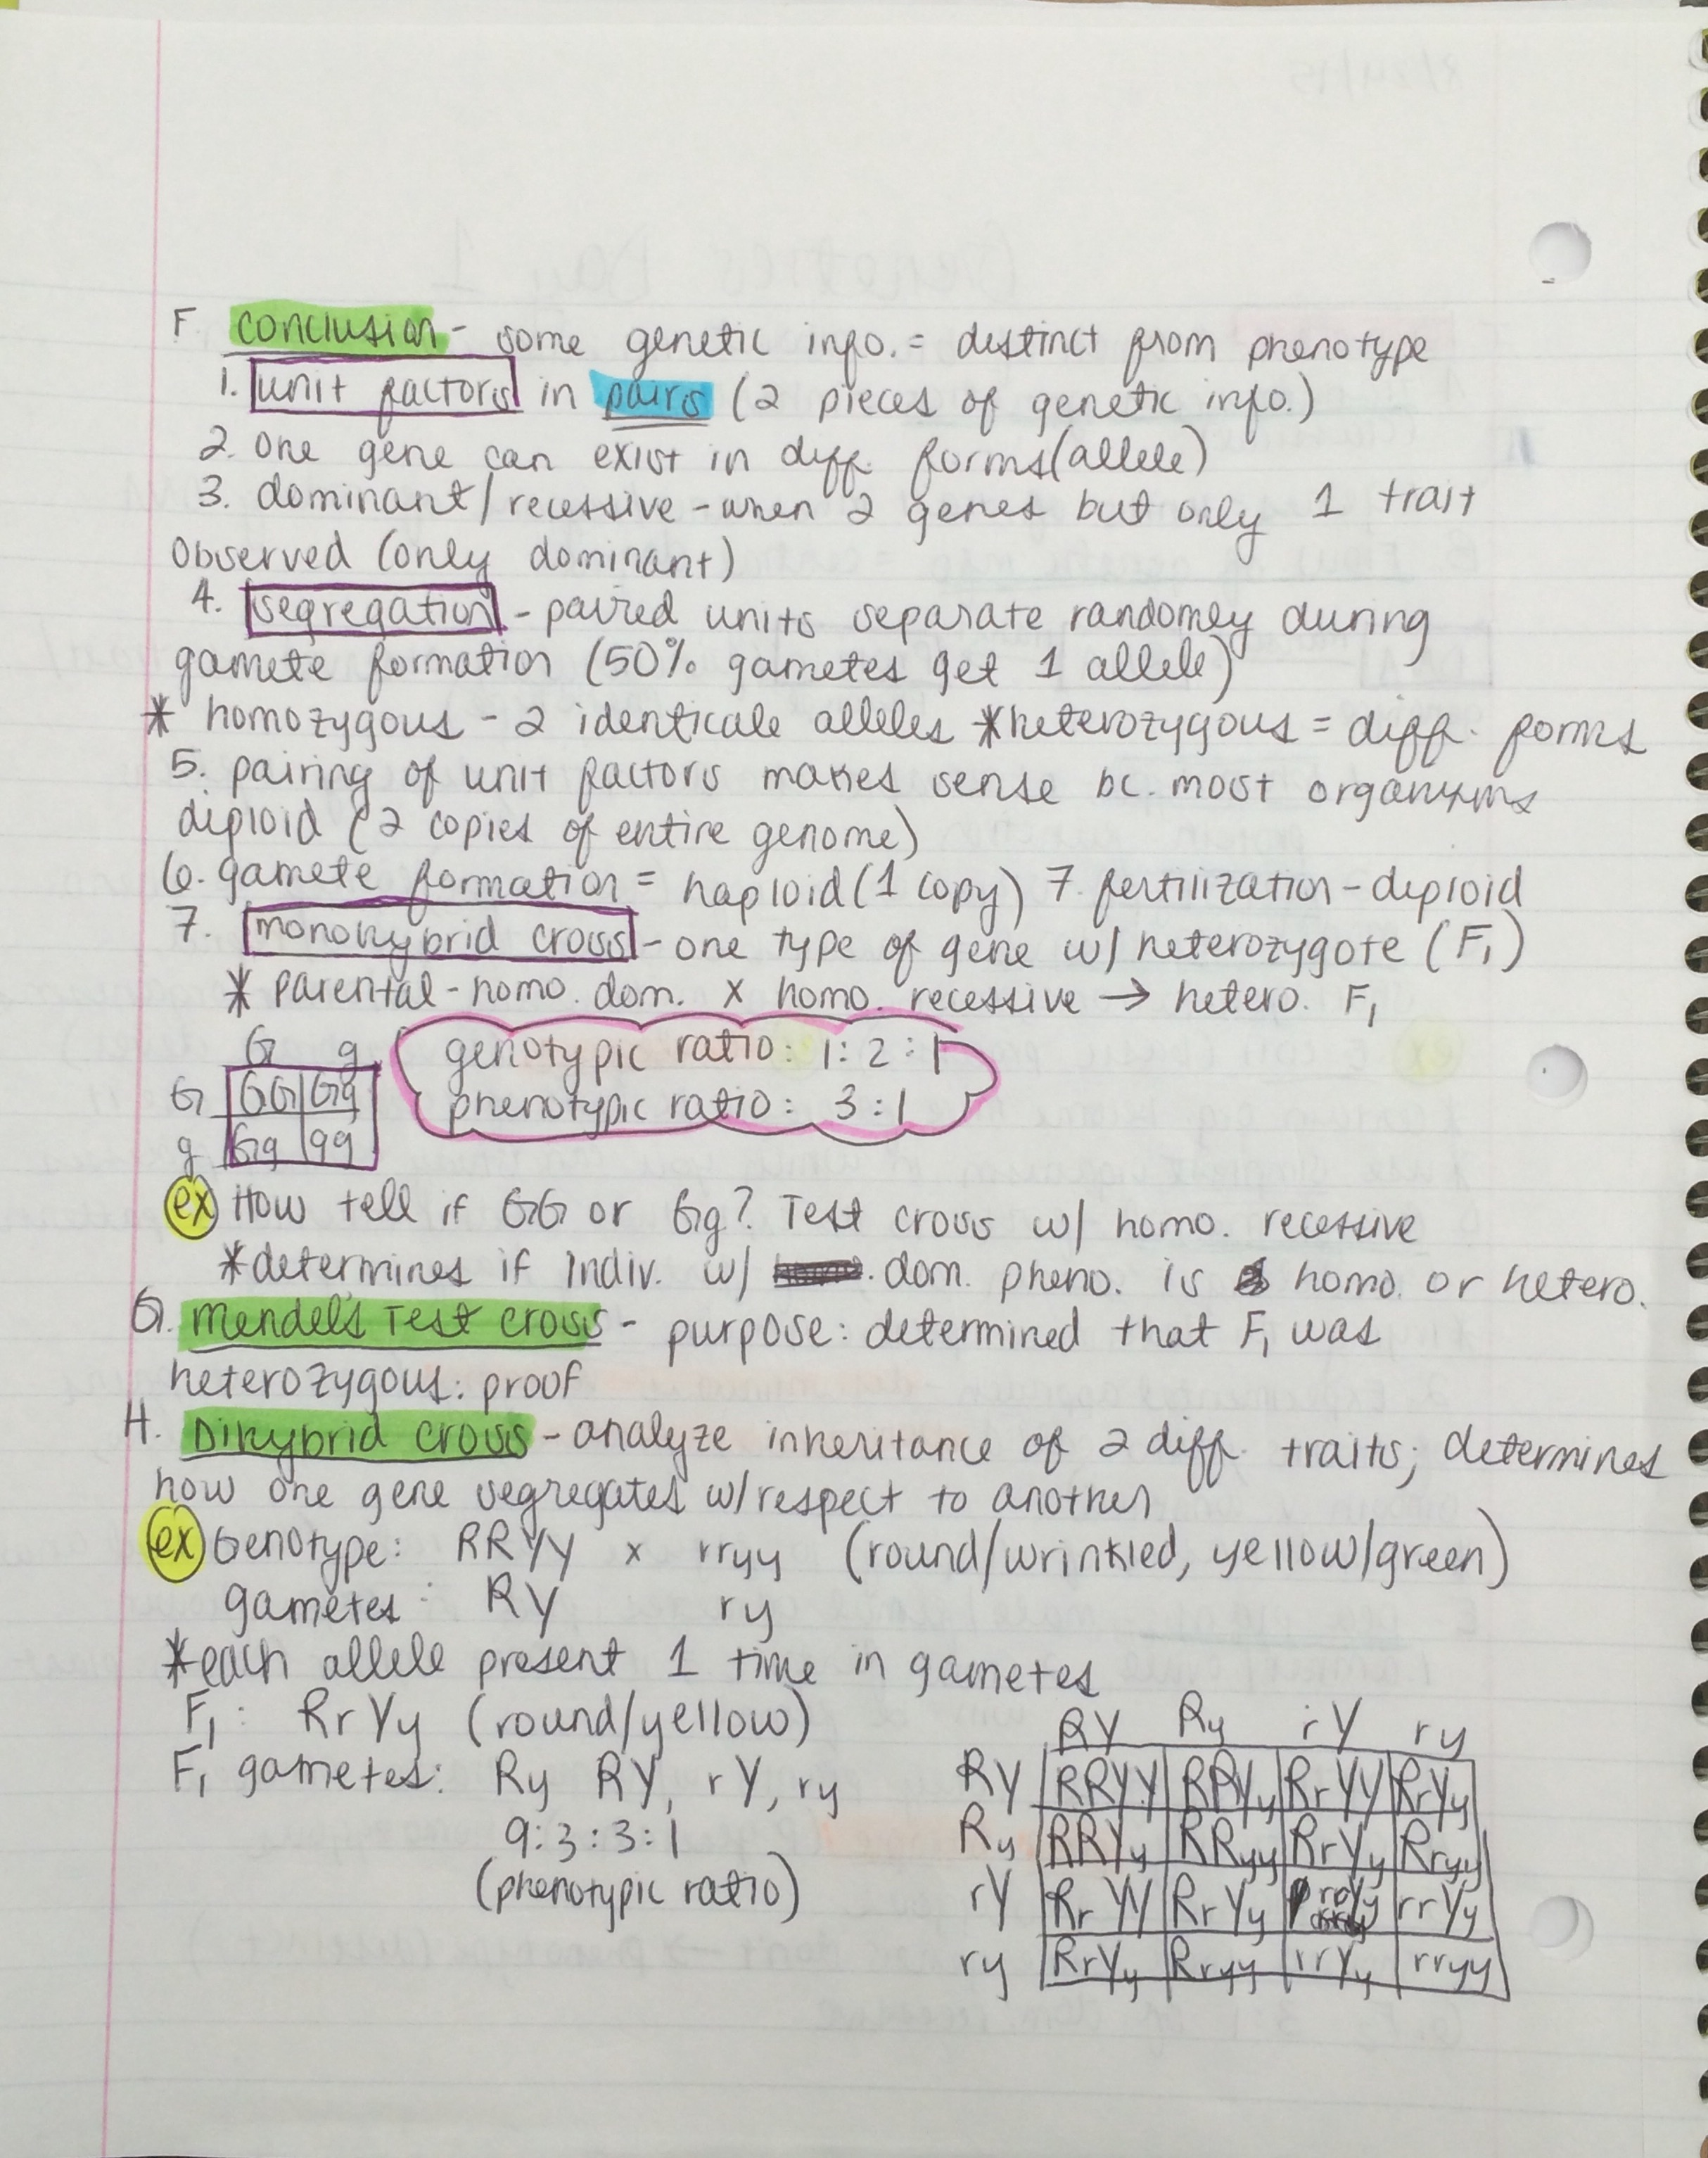 BIOL 3301 - Class Notes - Week 1